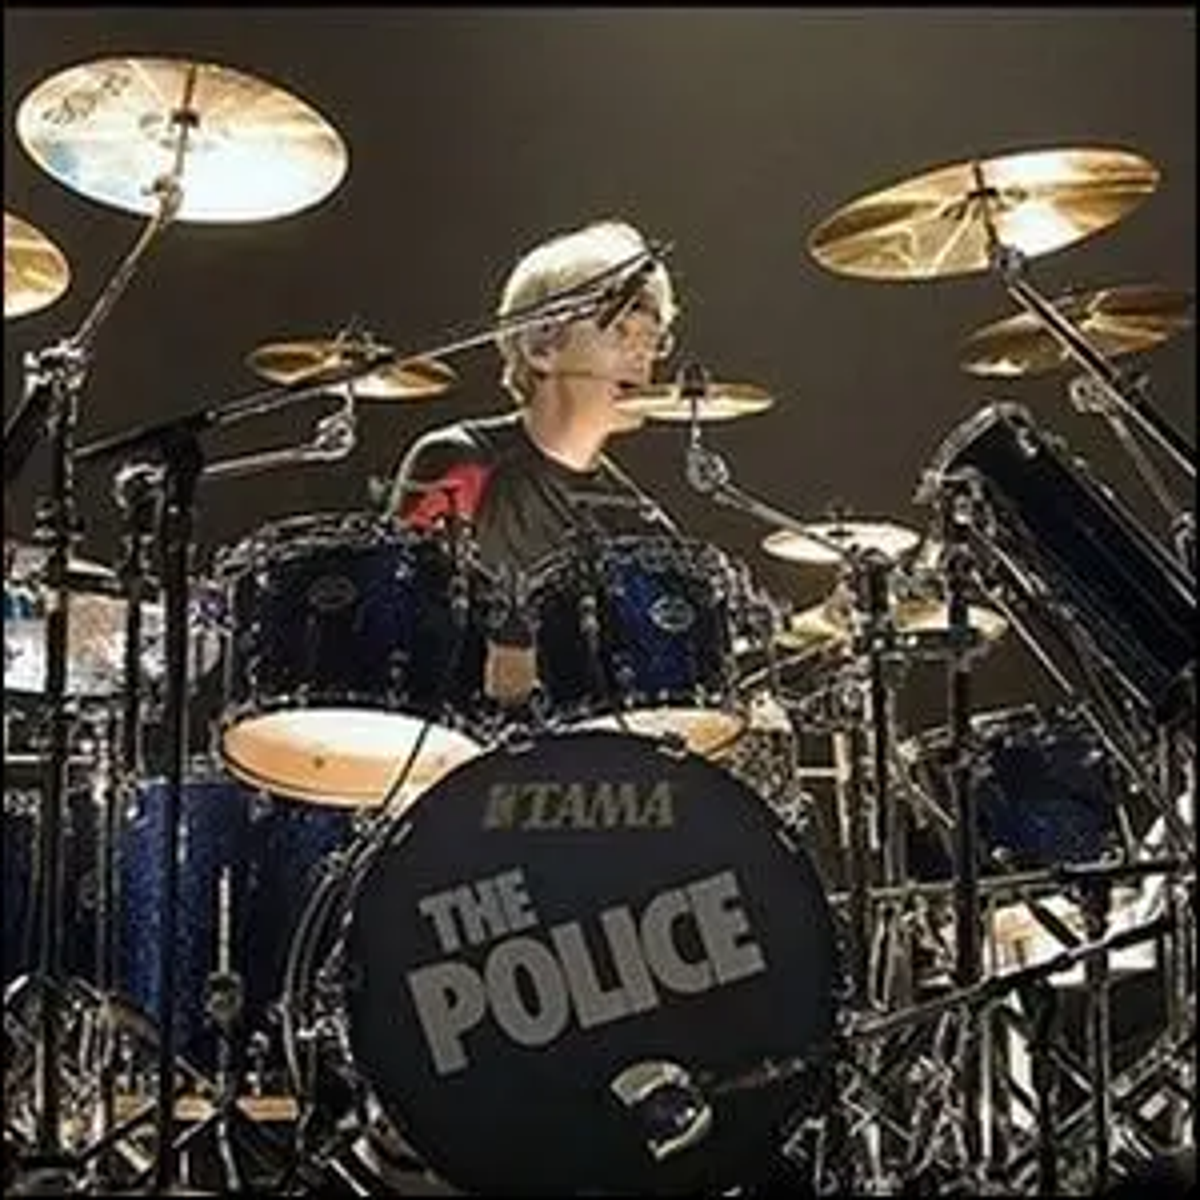 Stewart Copeland in a live music performance in Marseille, France.